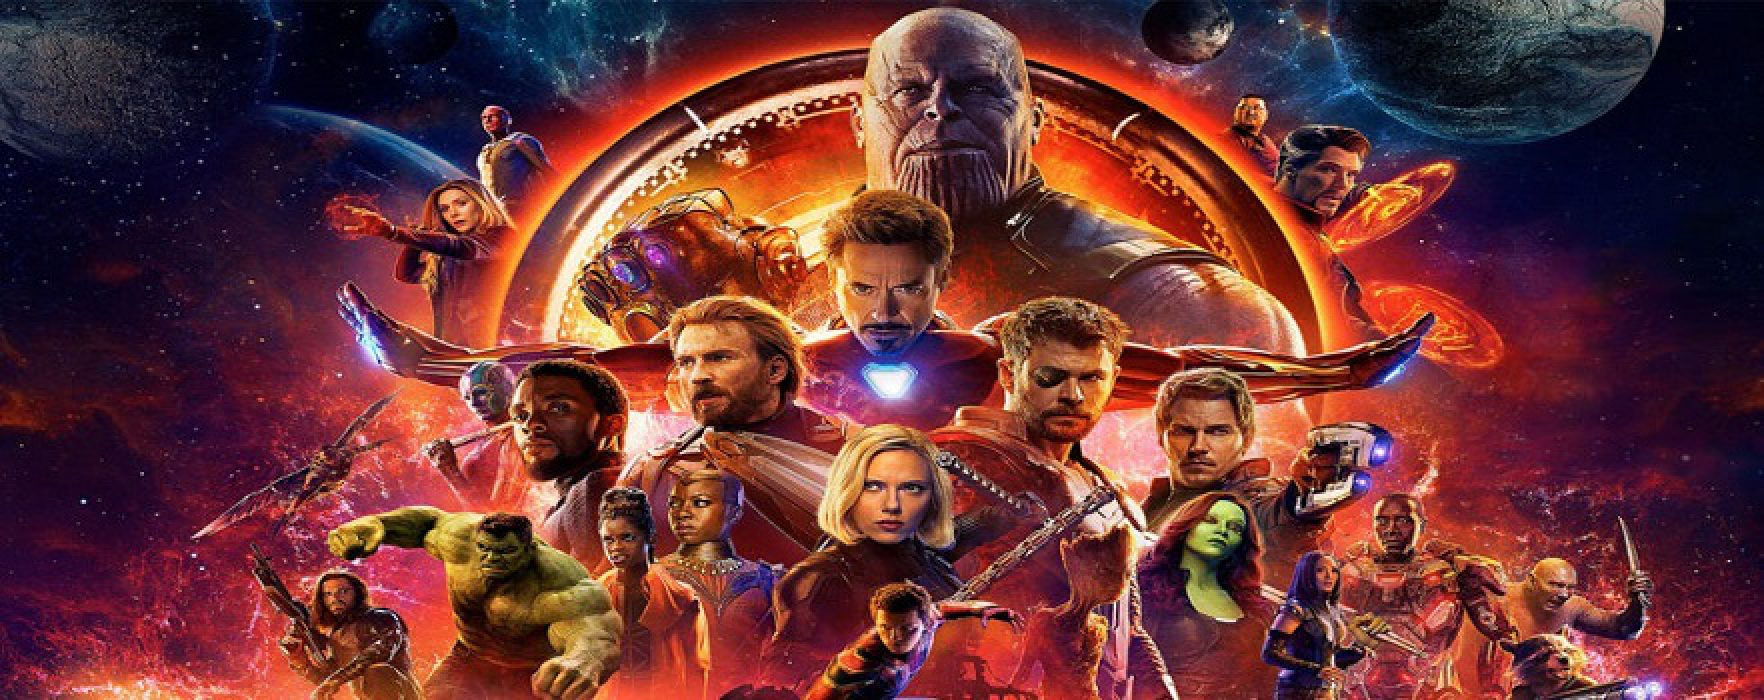 Avengers: Infinity War: Random Thoughts and Spoilers